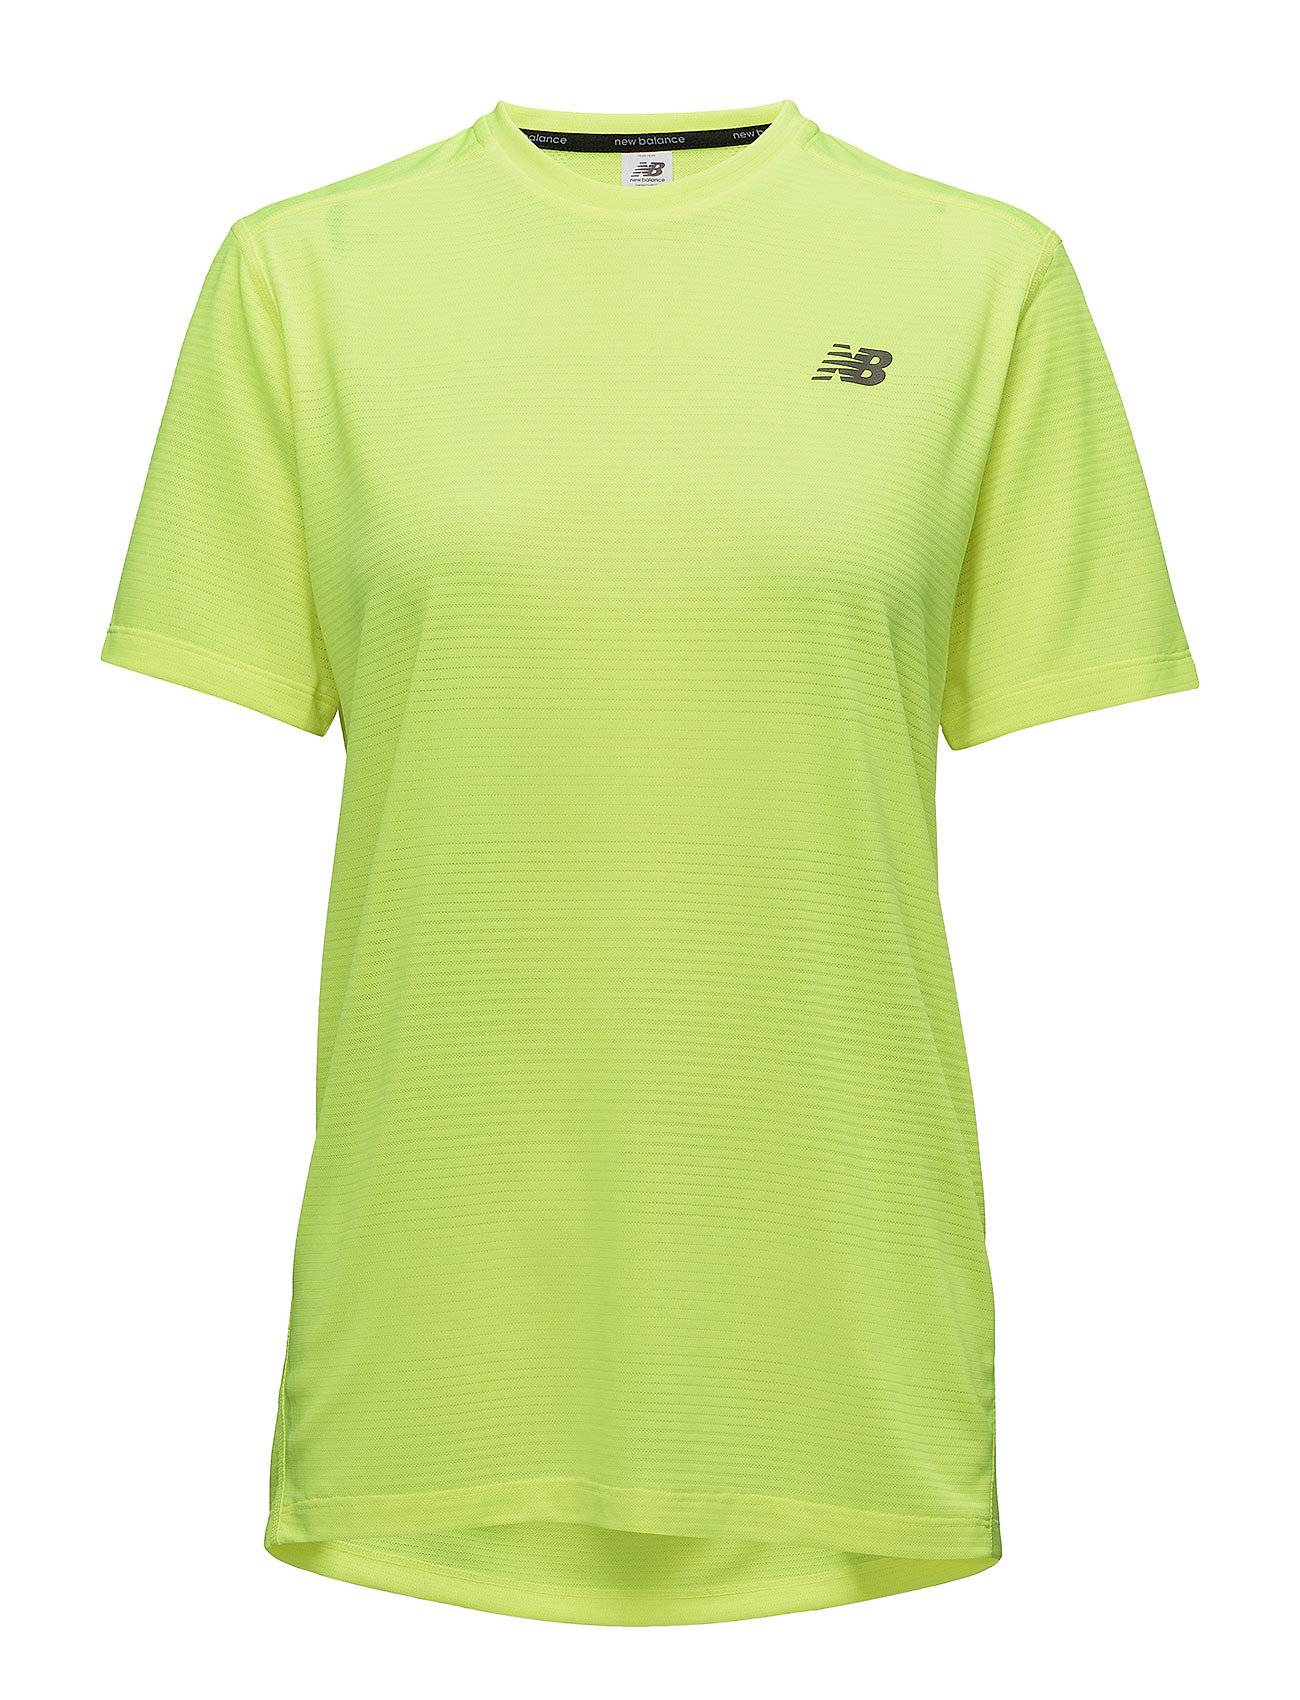 New Balance Max Intensity Short Sleevet